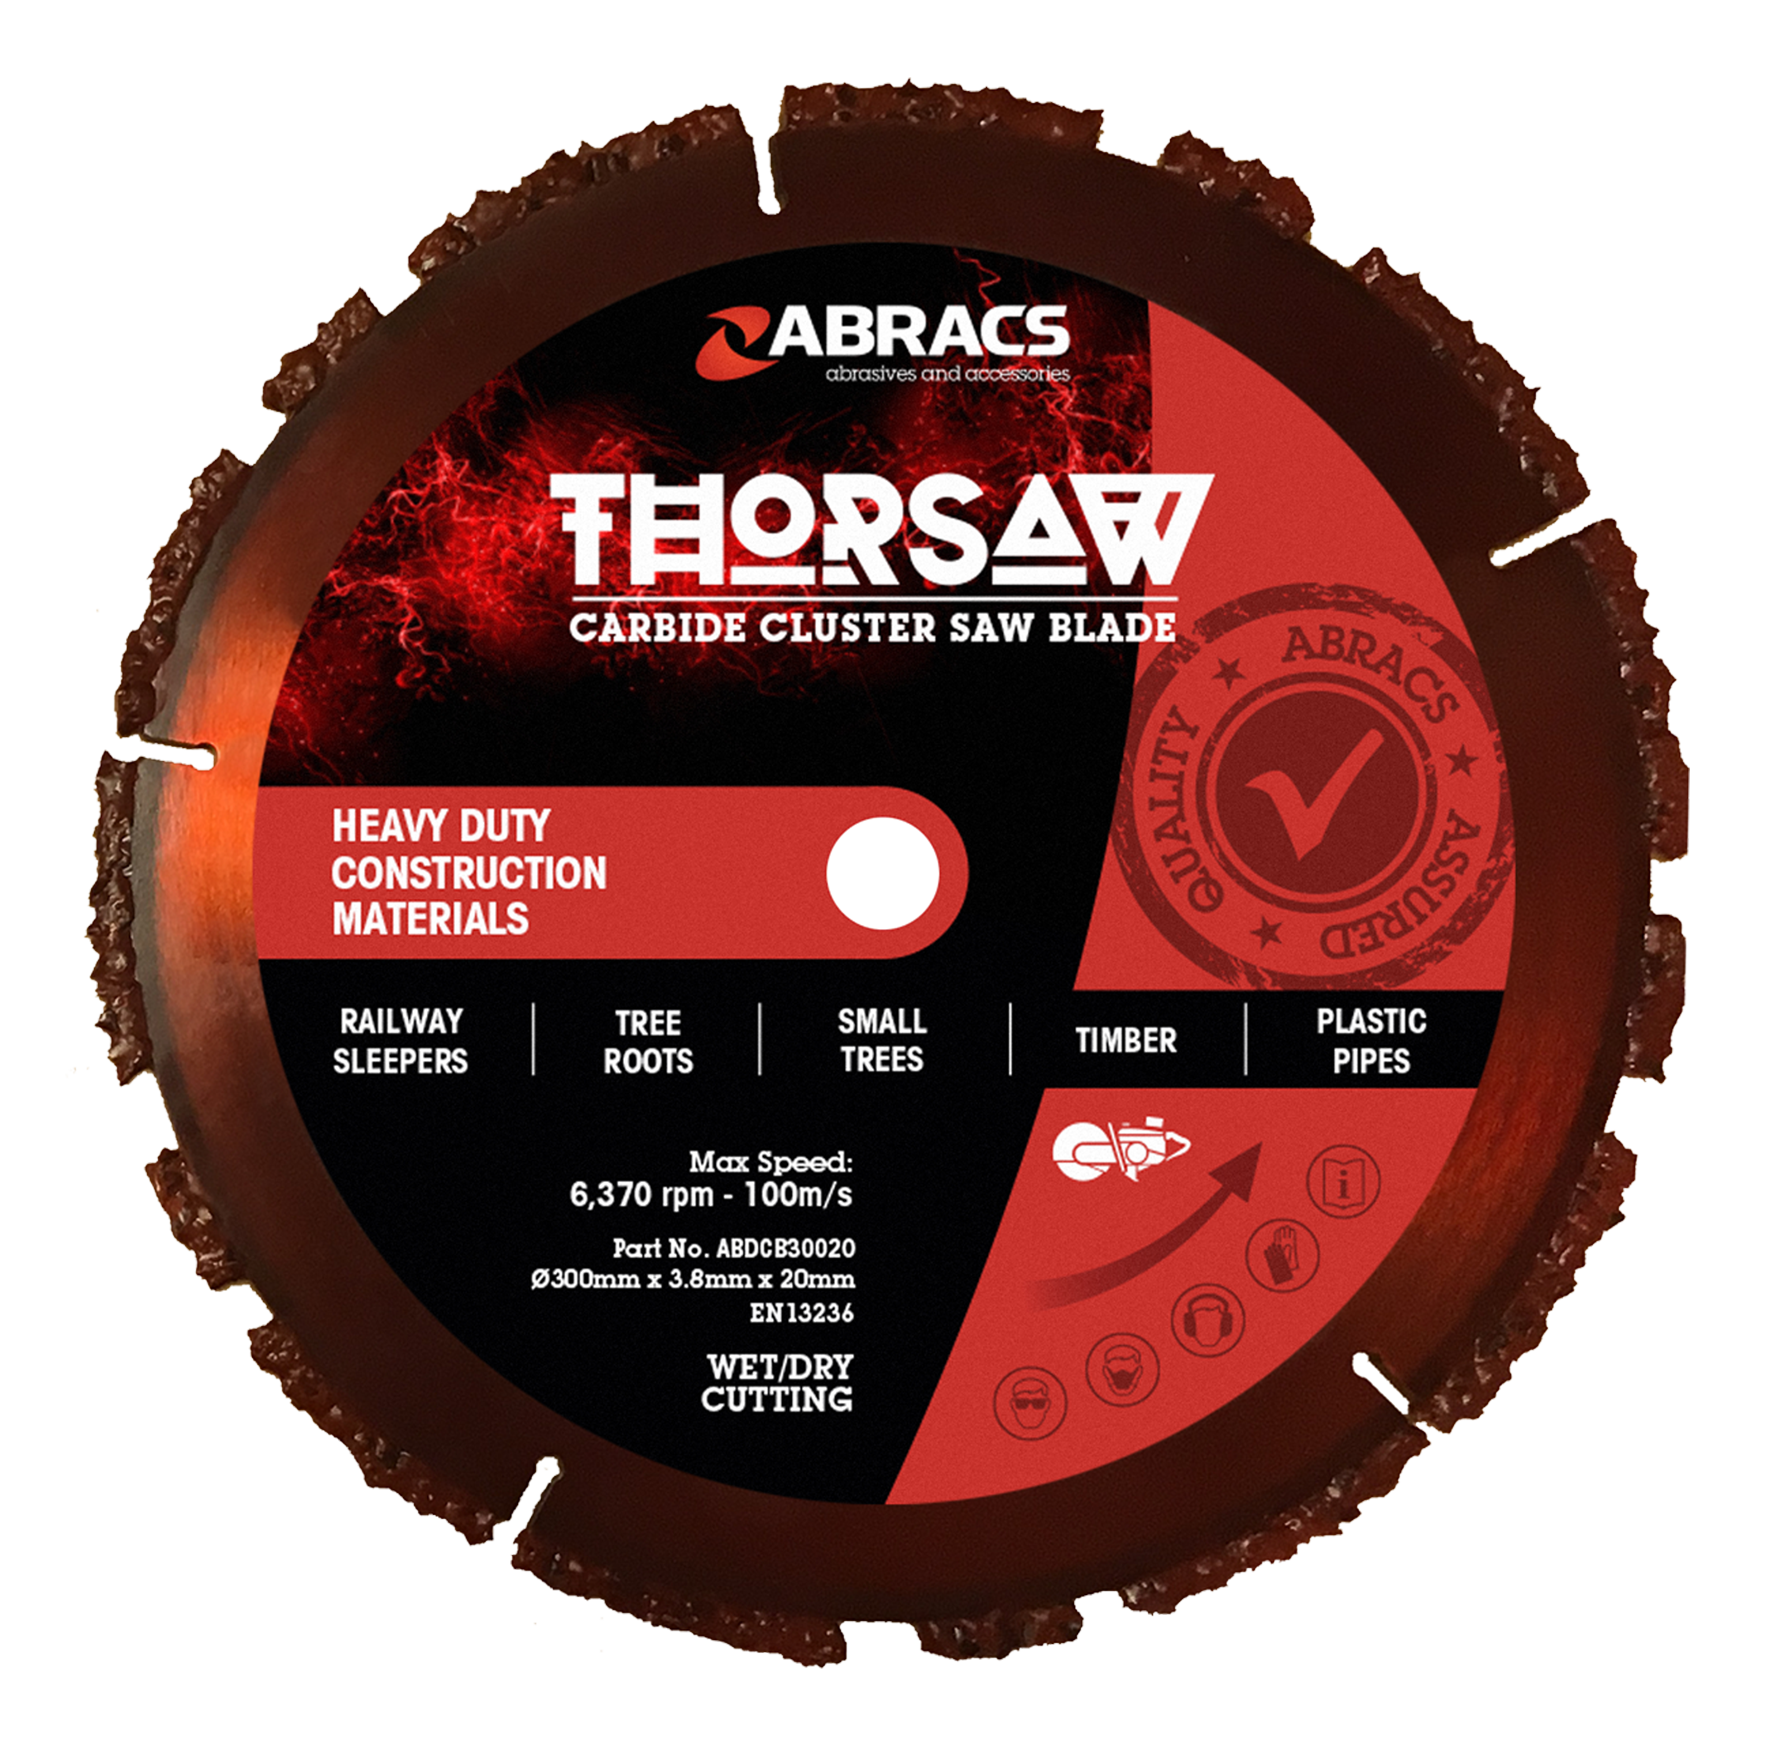 Thorsaw Carbide Cluster Saw